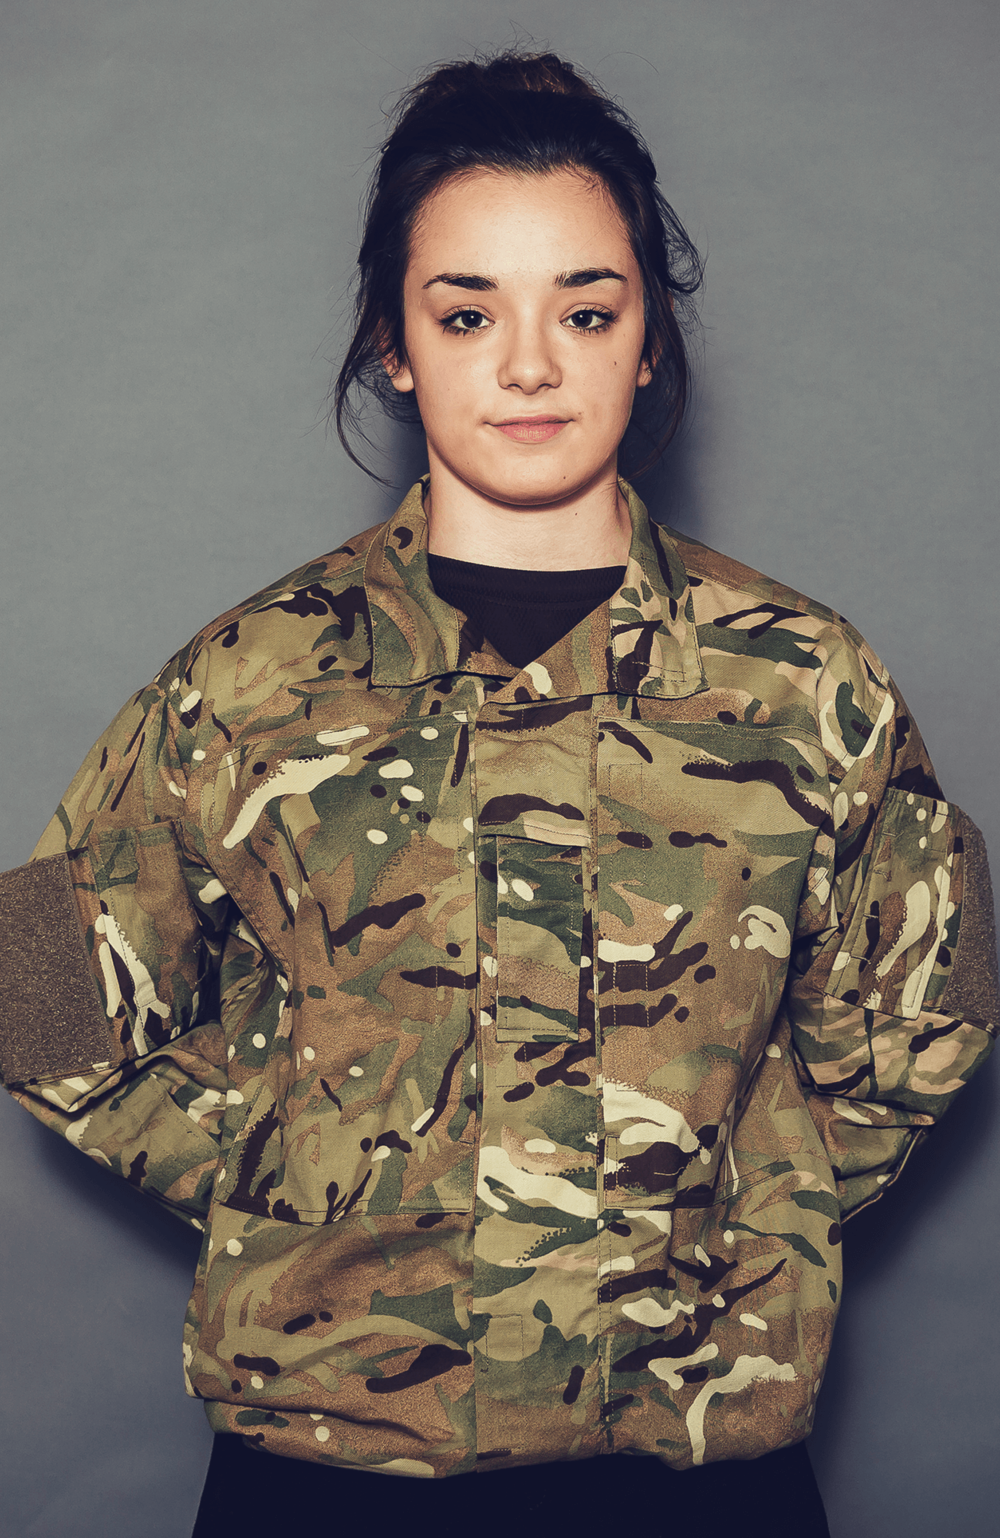 army---girl.png